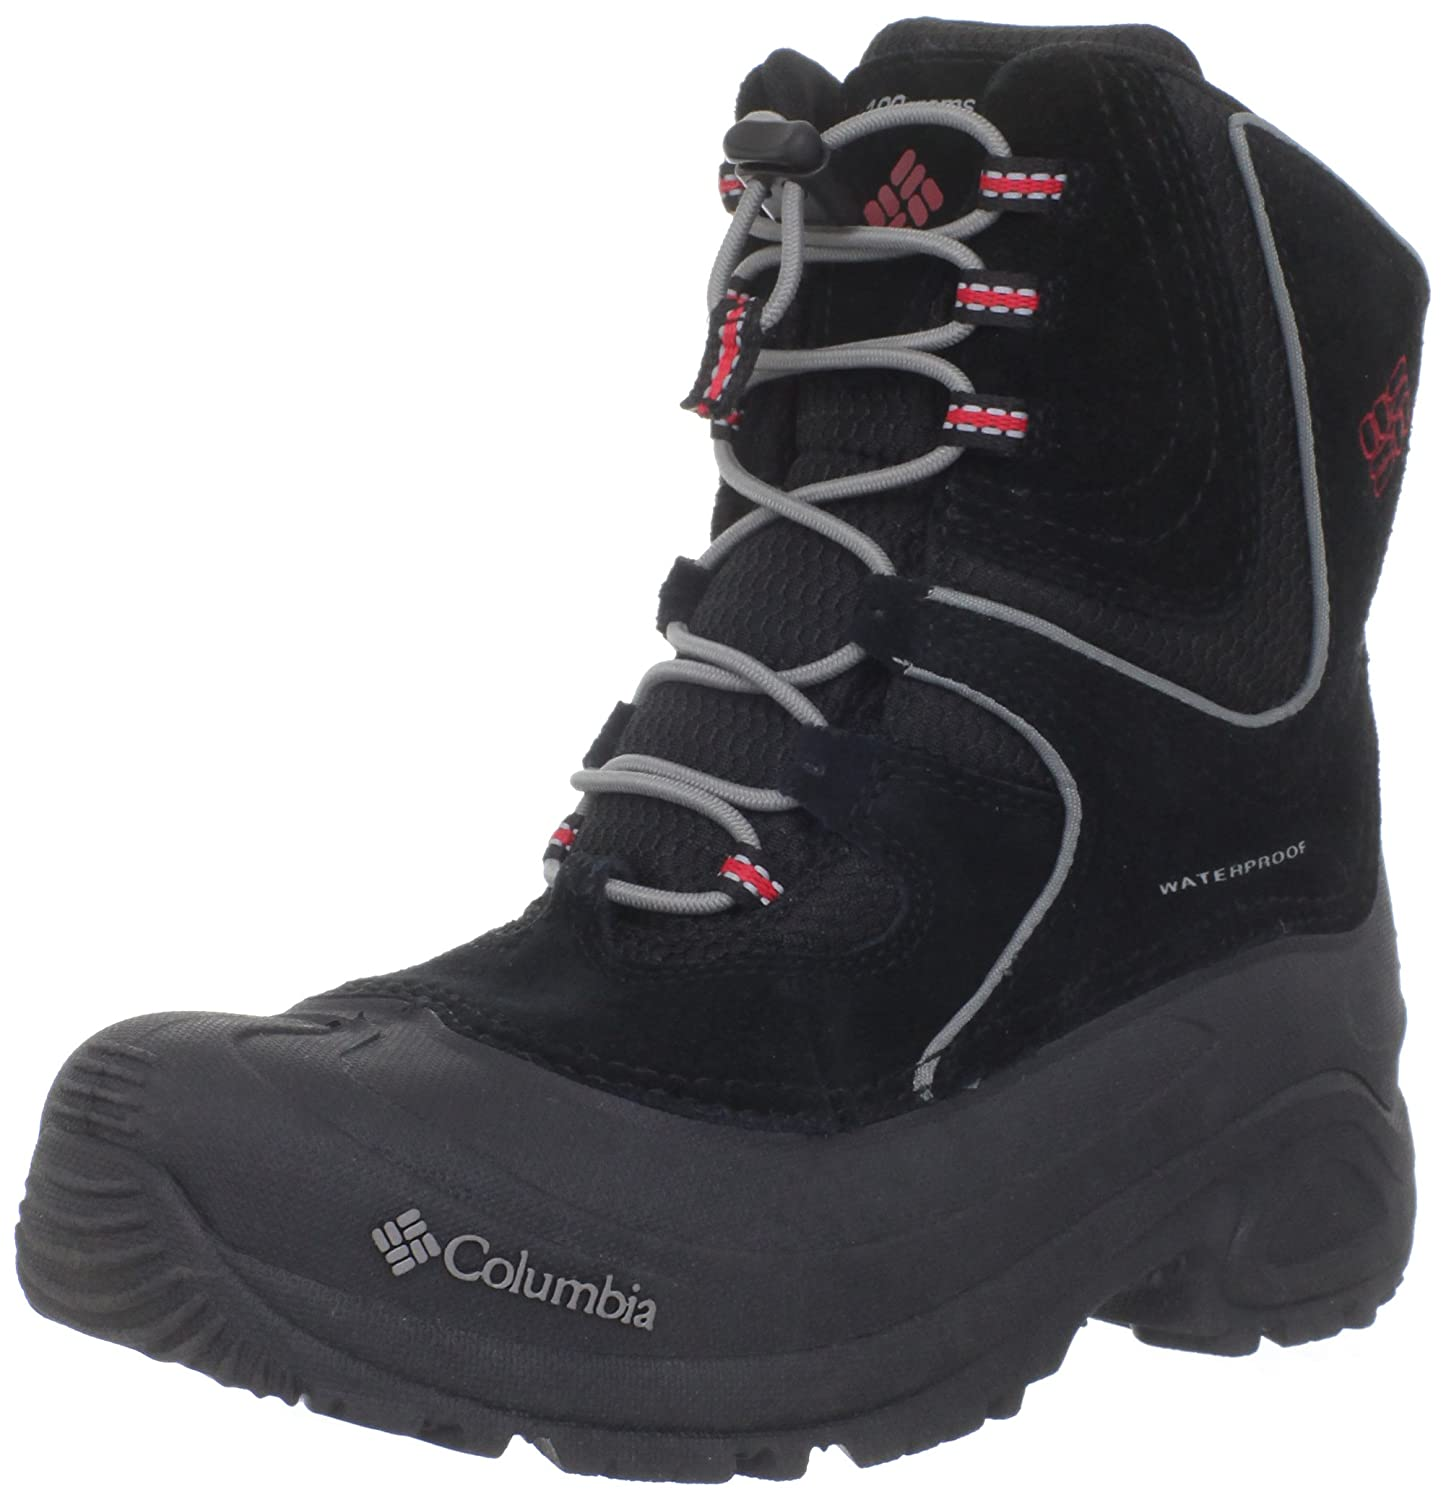 Columbia Youth Snowpack Snow Boot (Little Kid/Big Kid),Black/Intense Red,2 M US Little Kid